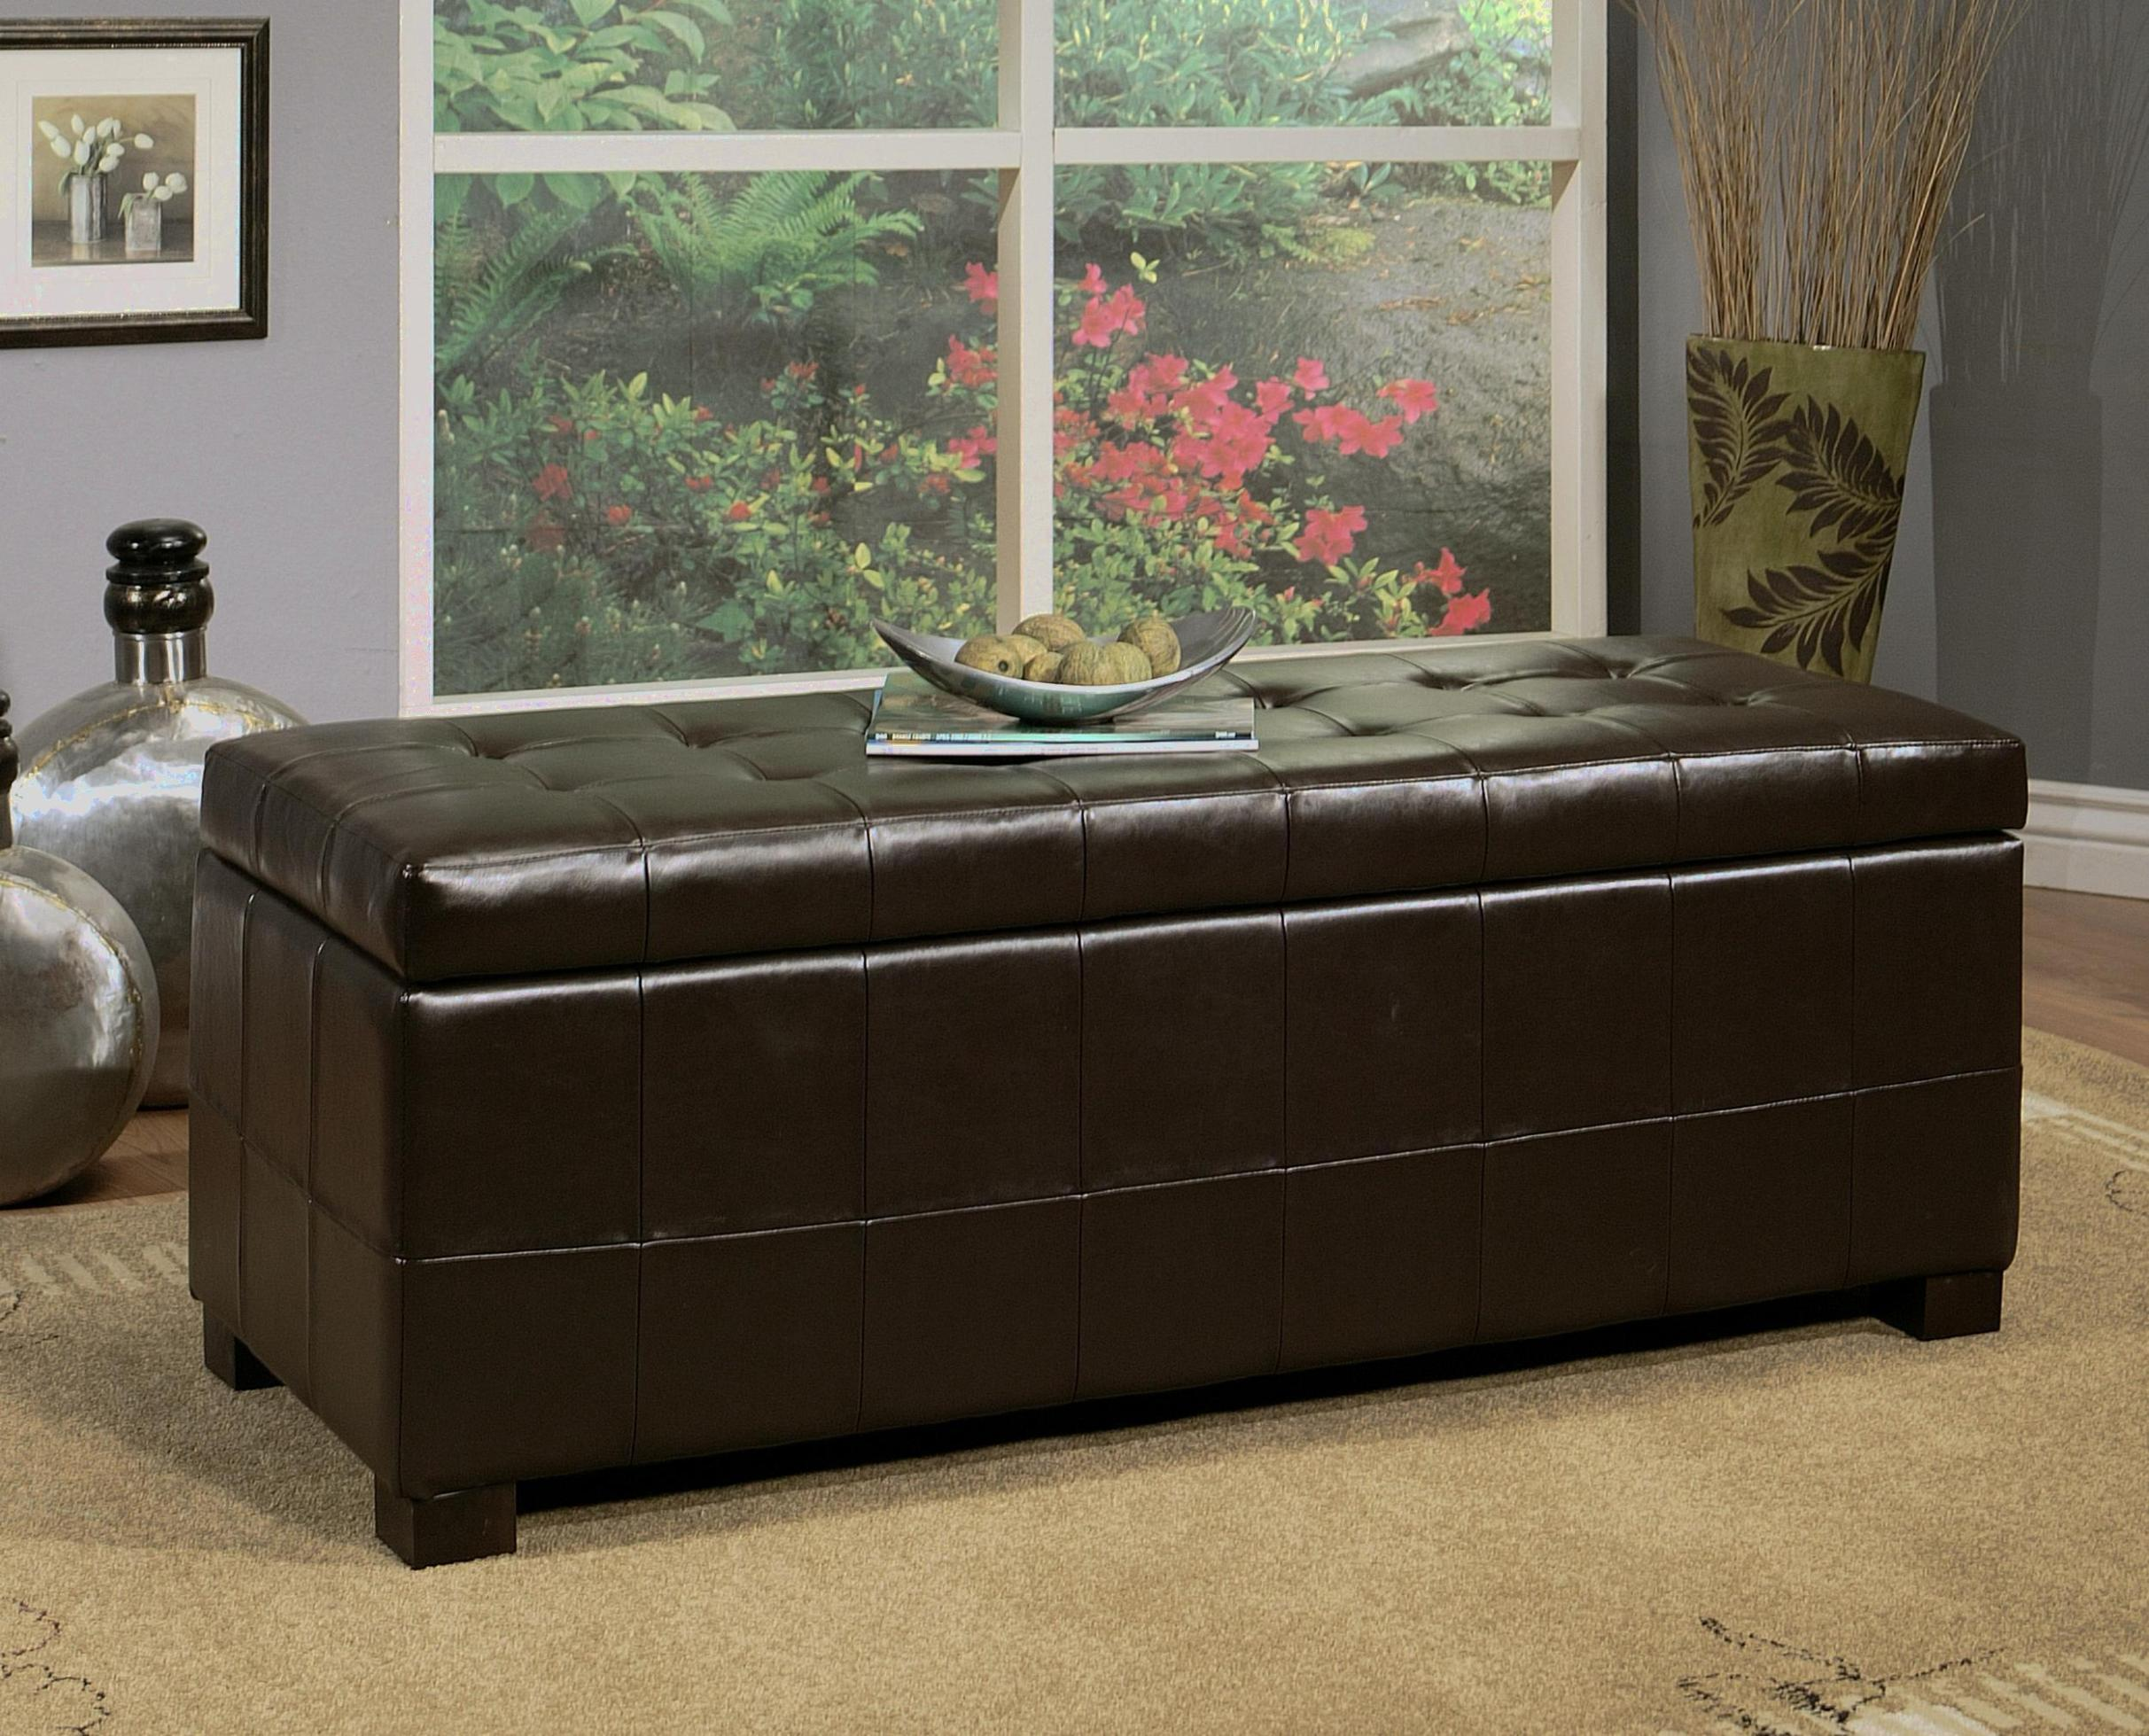 Image of: Tufted Ottoman Bench